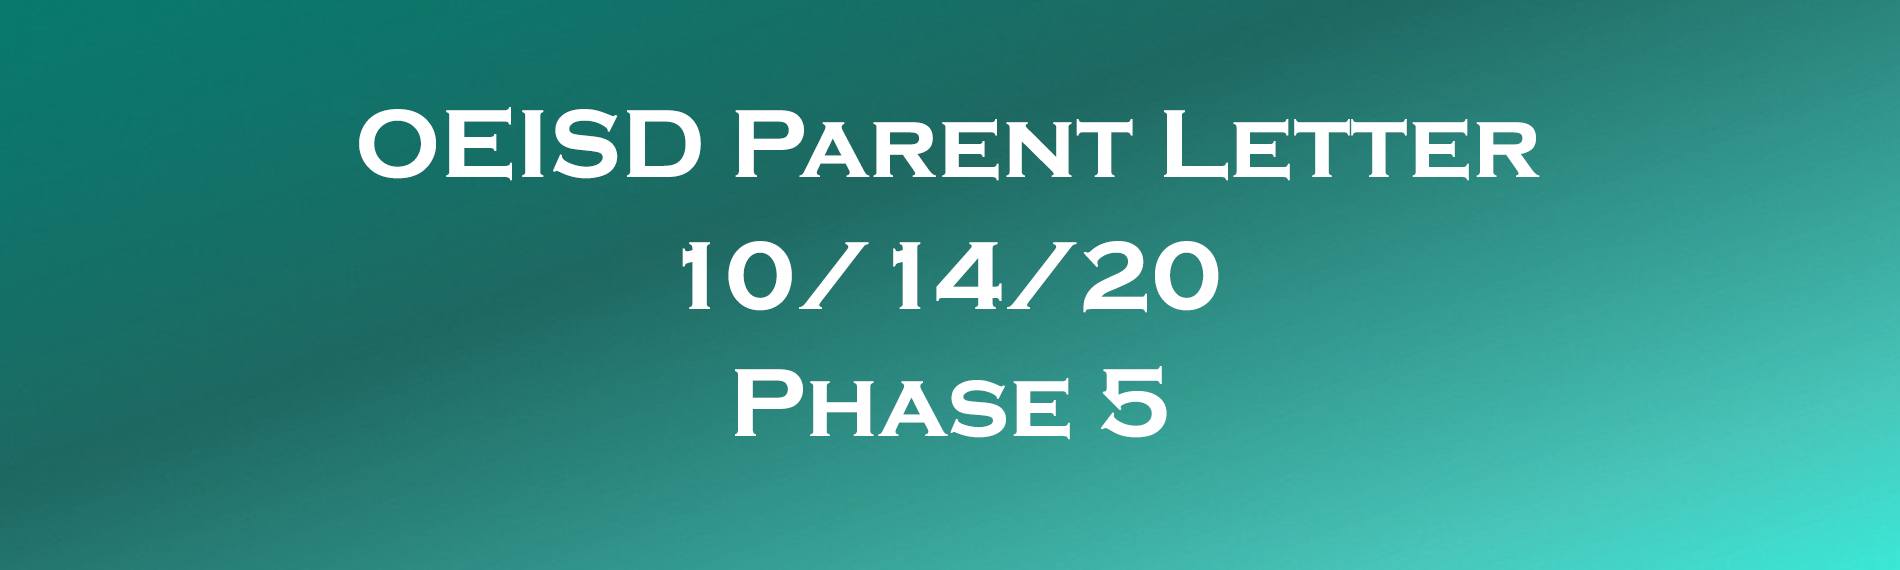 Parent letter regarding Phase 5 of covid